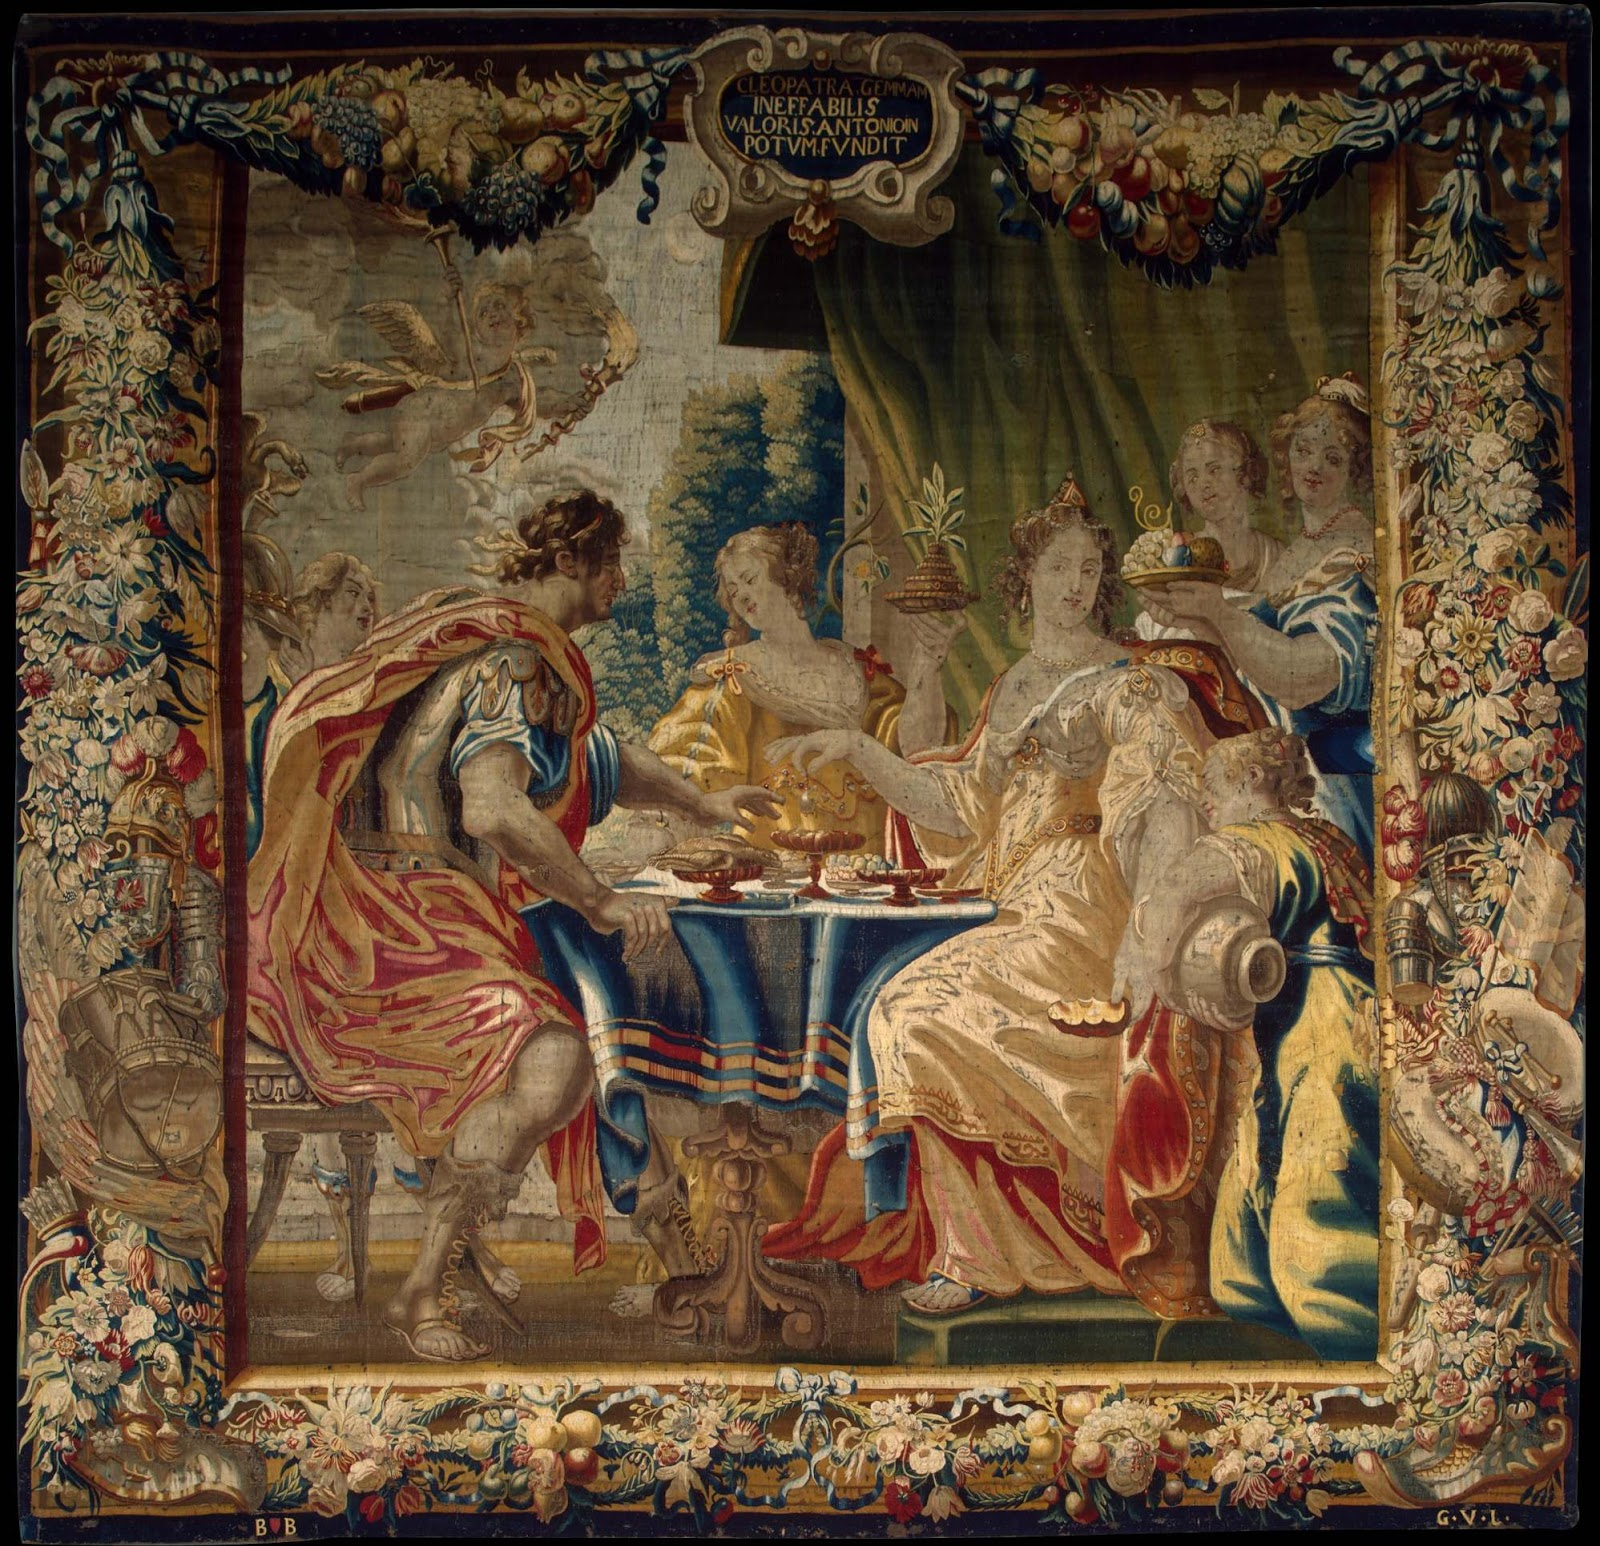 Spencer Alley: Drawings and Tapestries from the Hermitage